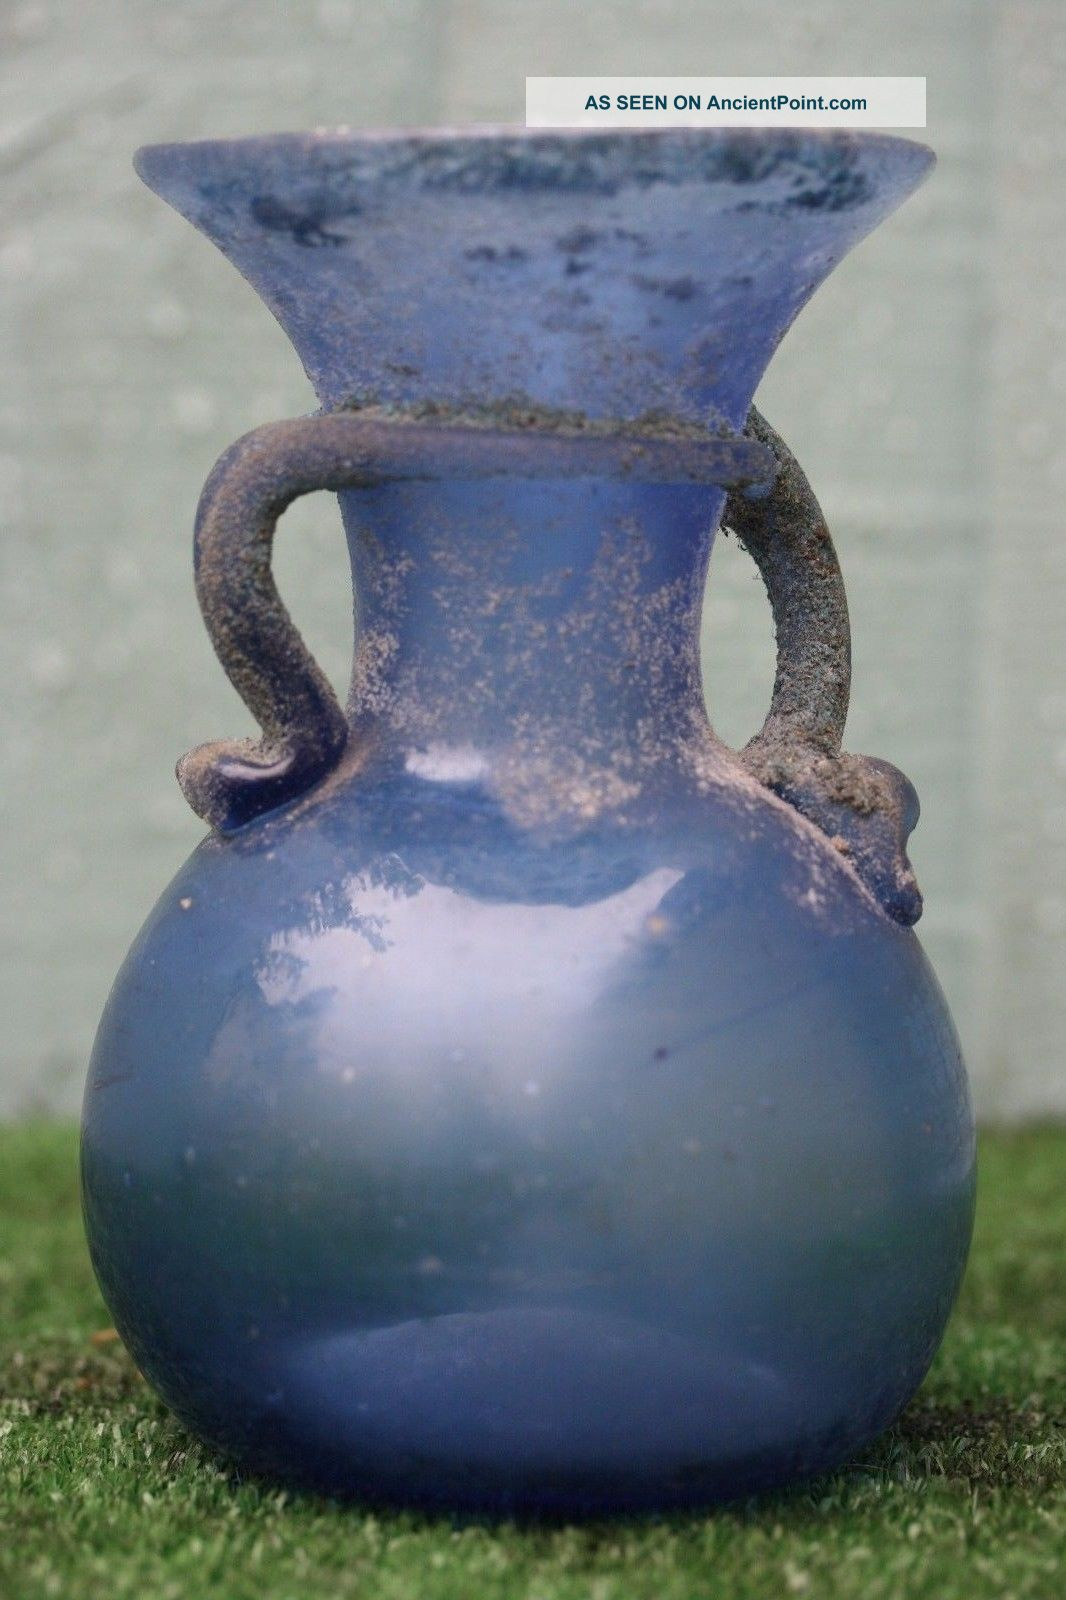 & Orig.  Antiquity Of A: Roman Glass Vase With Blue Colouring (bc Years) Roman photo